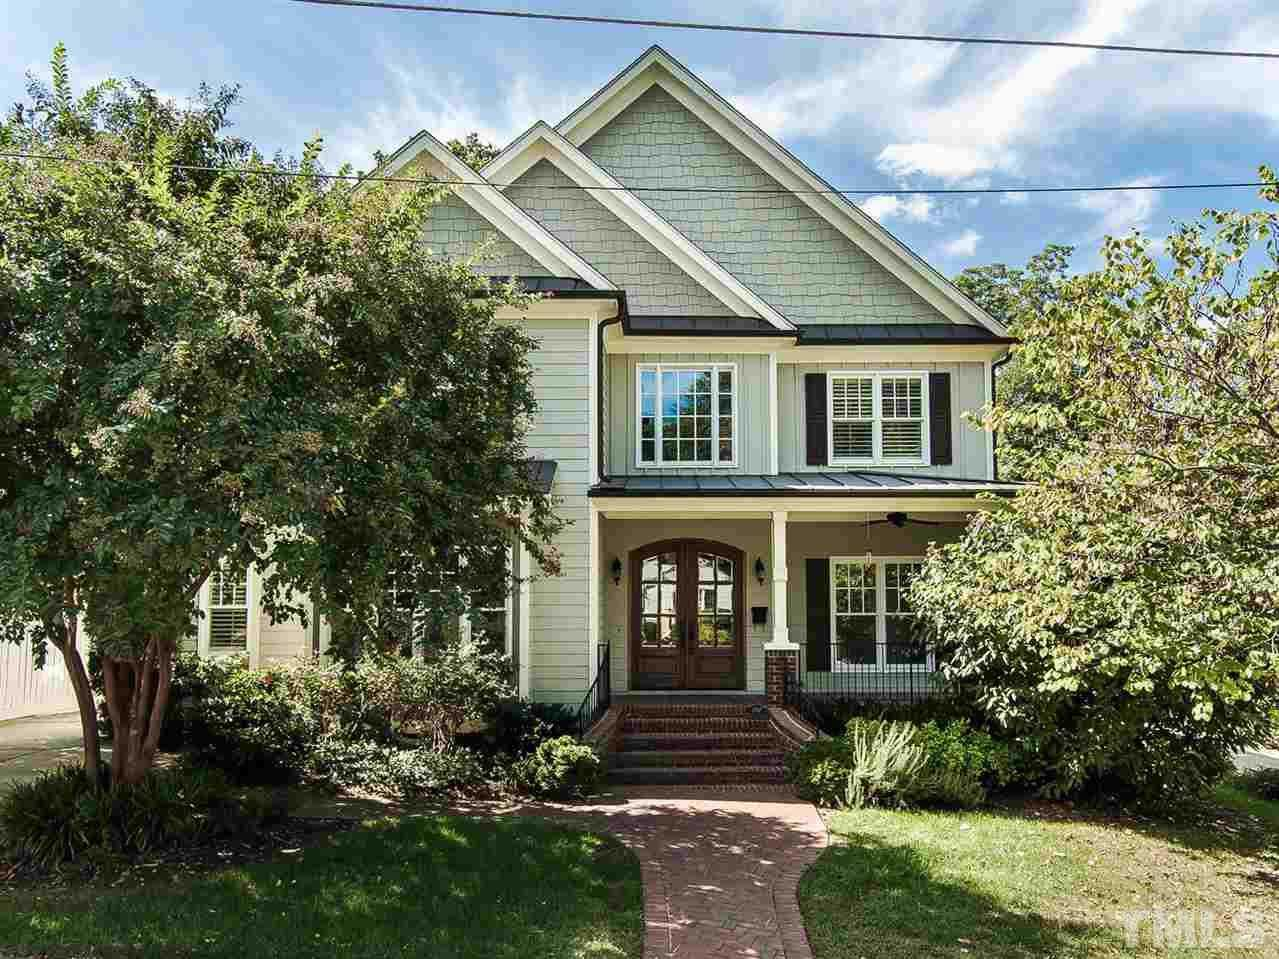 $835,000 - 5Br/5Ba -  for Sale in Not In A Subdivision, Raleigh